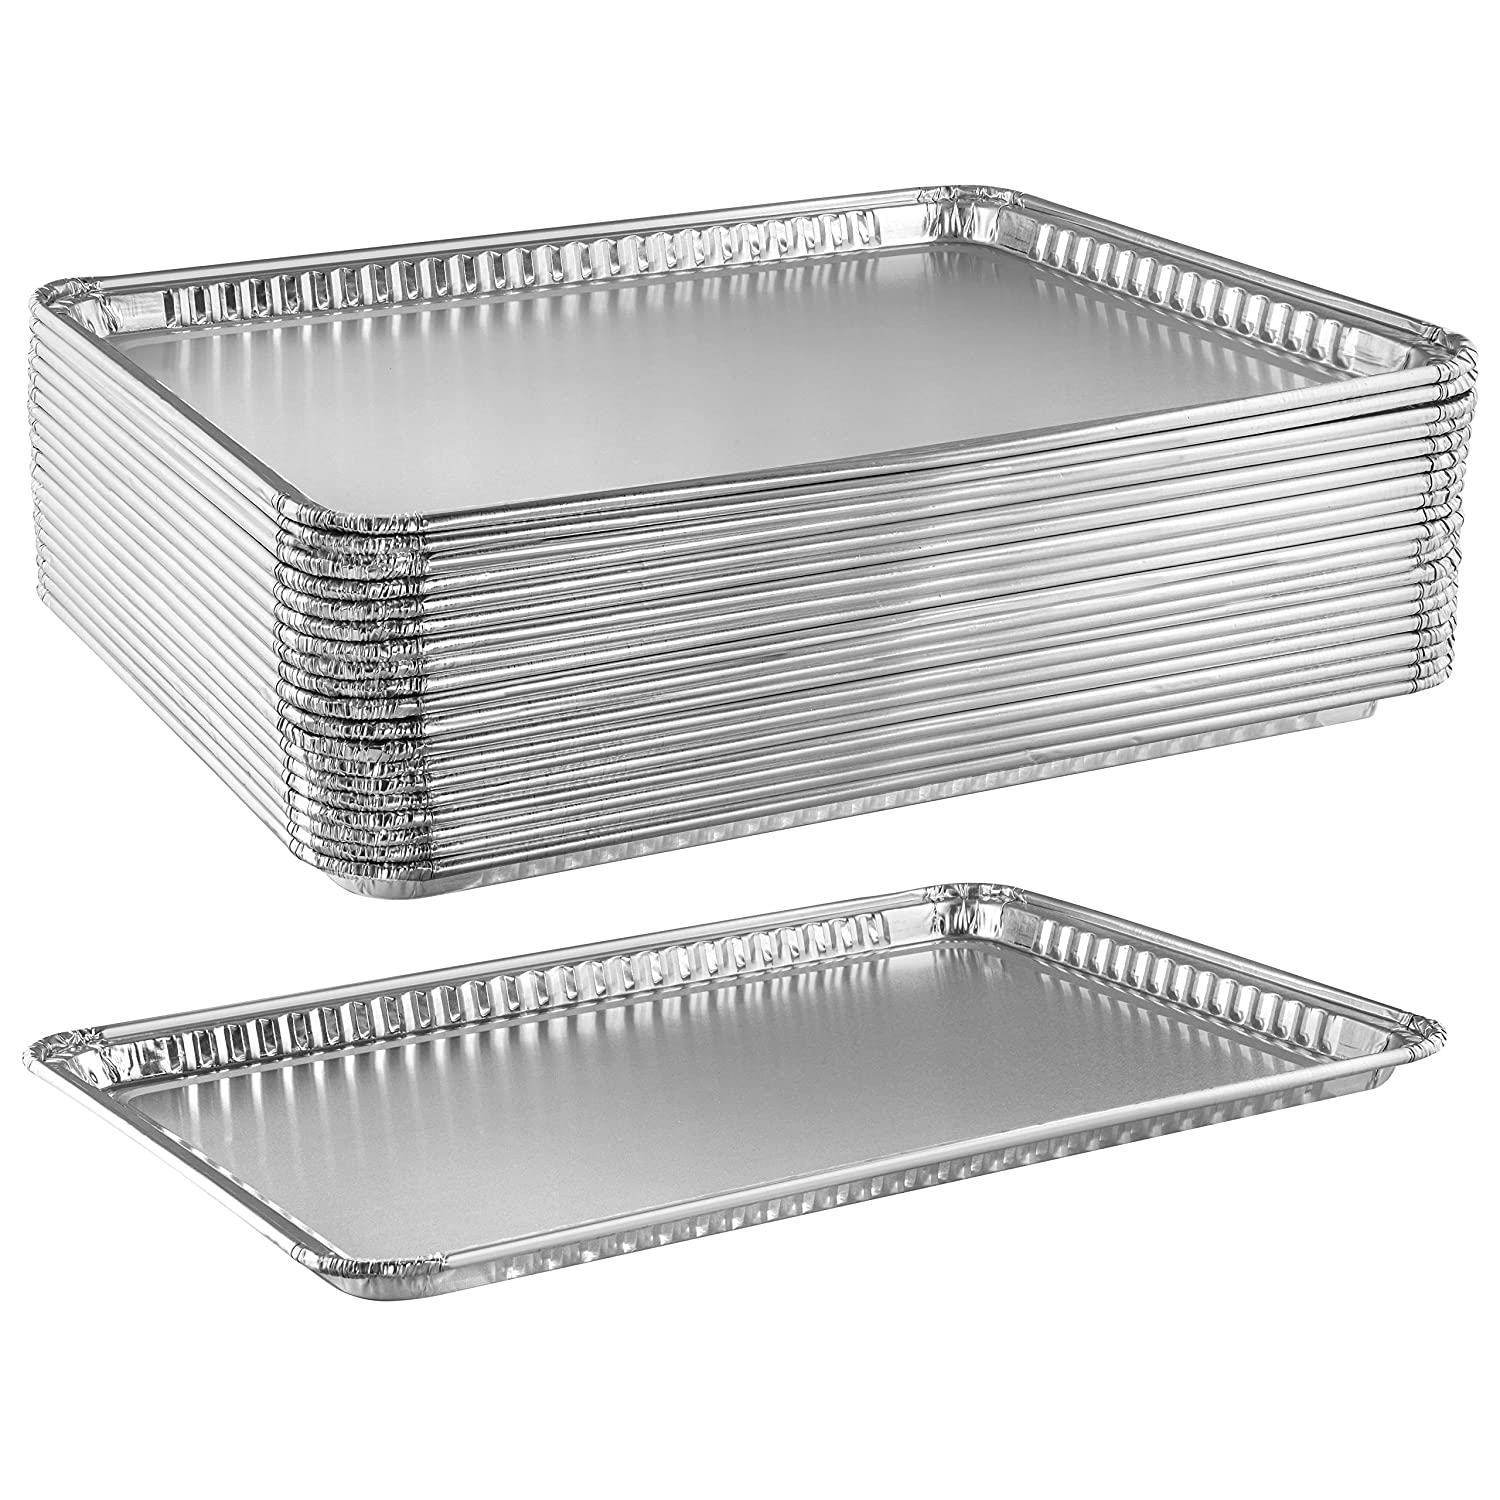 Aluminum Pan Cookie Sheets | Heavy Duty Nonstick Disposable Baking Trays for Cookies, Bacon, Brownies | Rectangular Foil Pans for Oven, Broiler, Cooking, Grilling, Catering | 16 x 11 Inch, 20 Pack